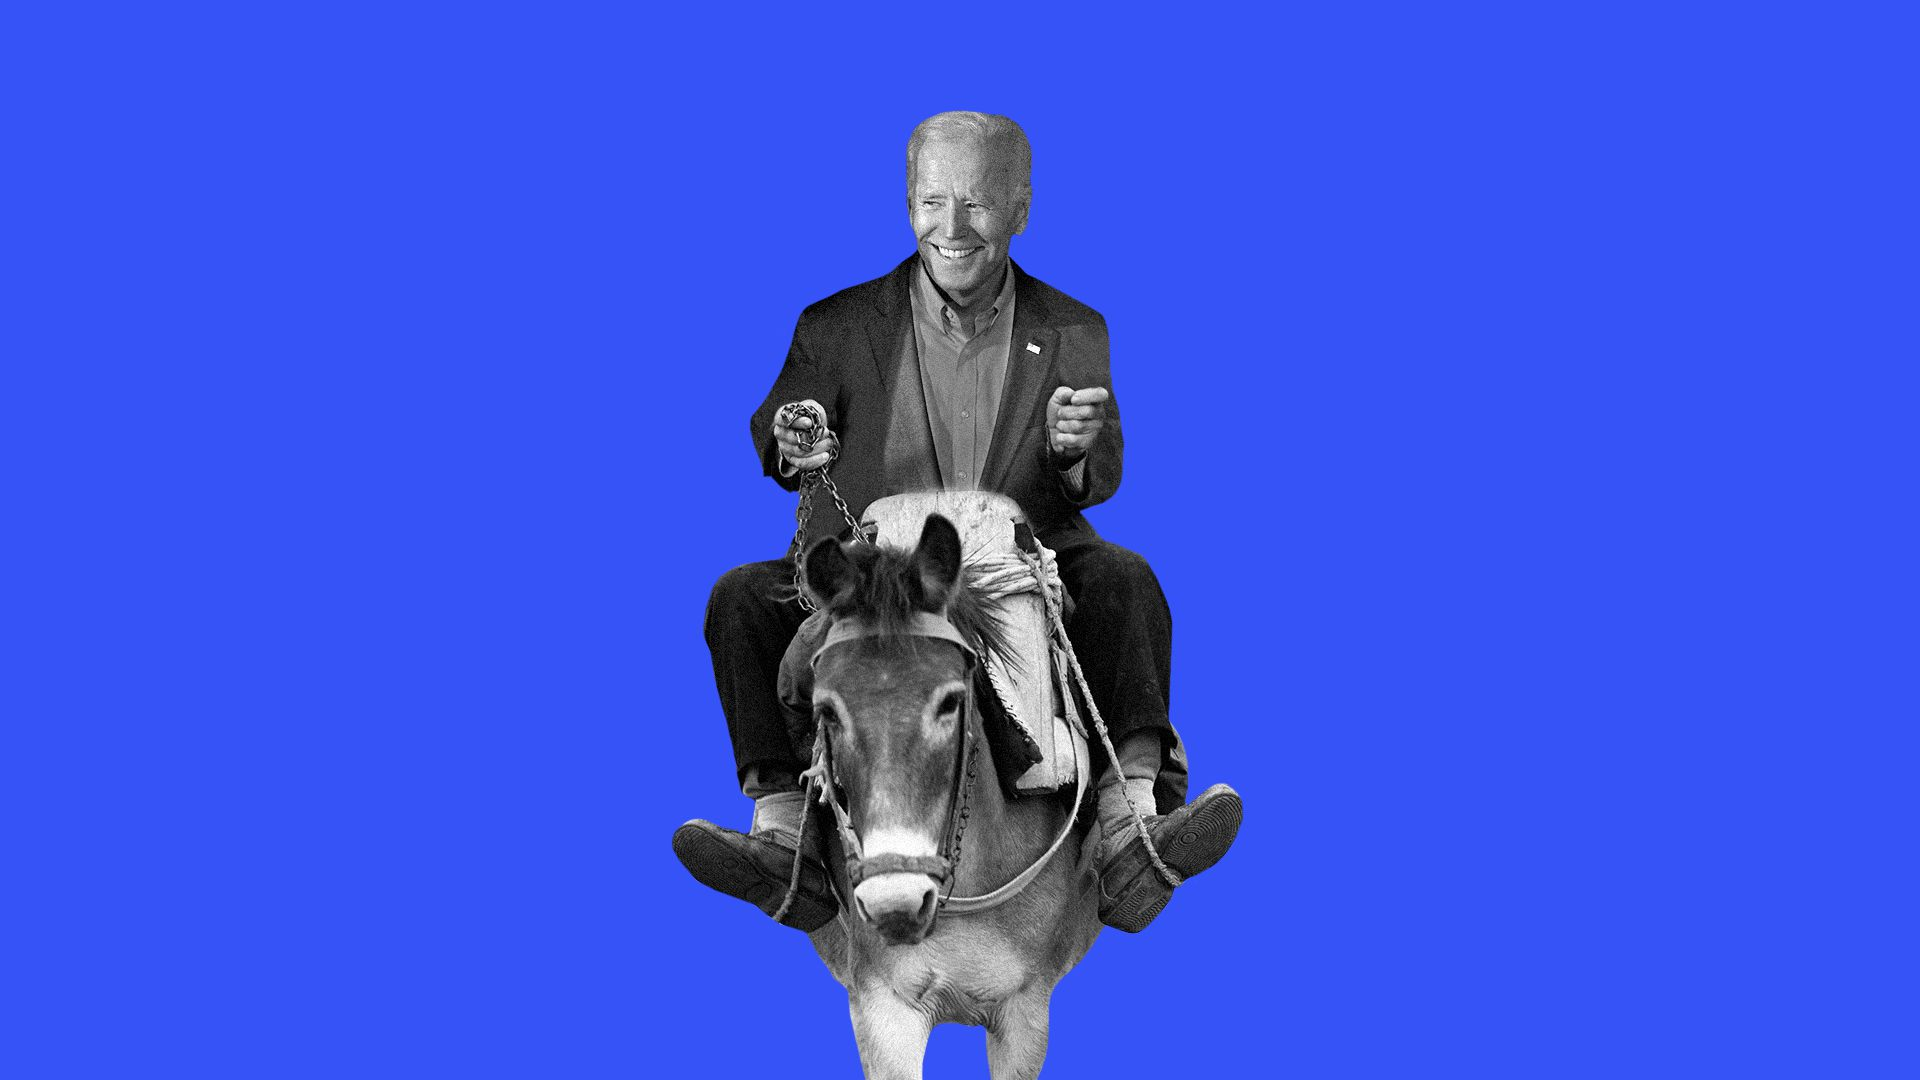 Illustration of Biden riding a donkey